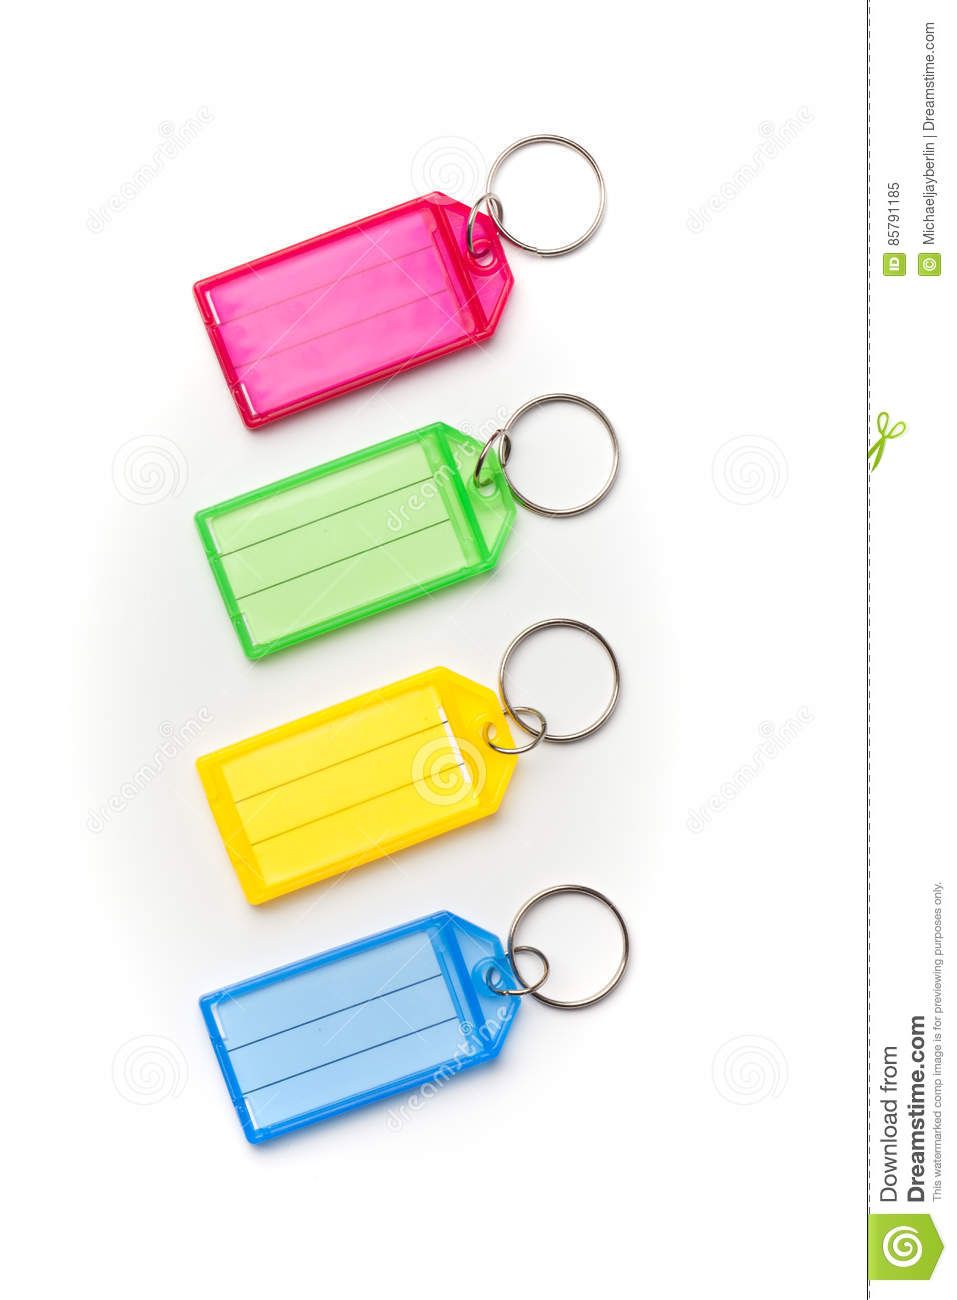 Colored Name Tags, Isolated On White Stock Image - Image of